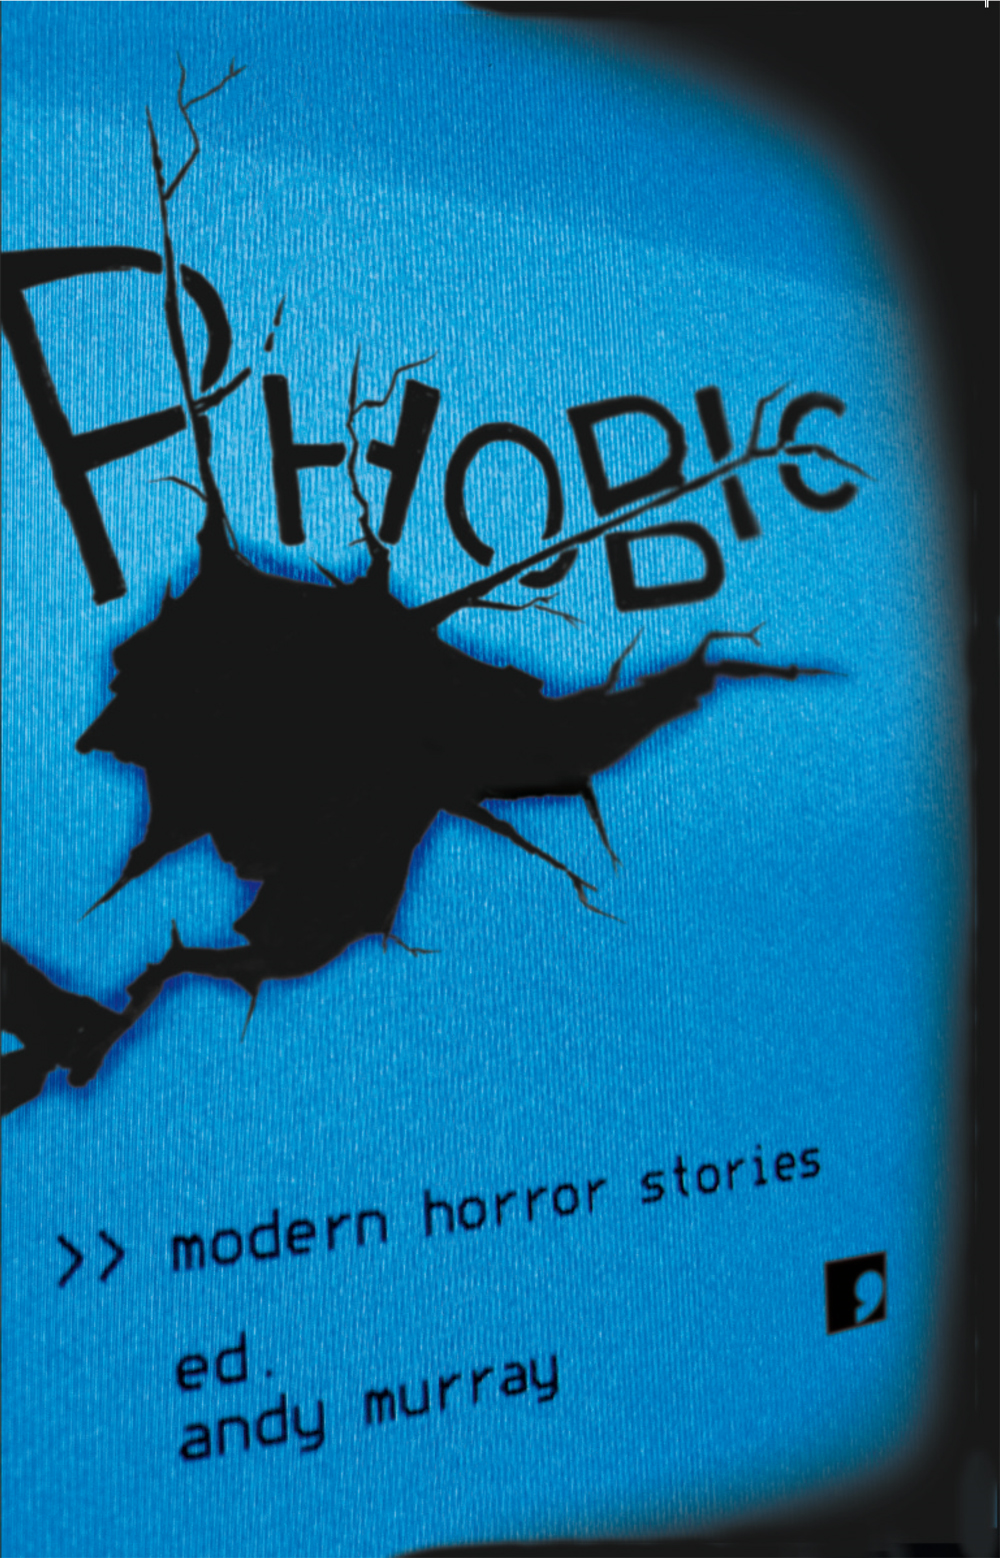 Phobic: Modern Horror Stories